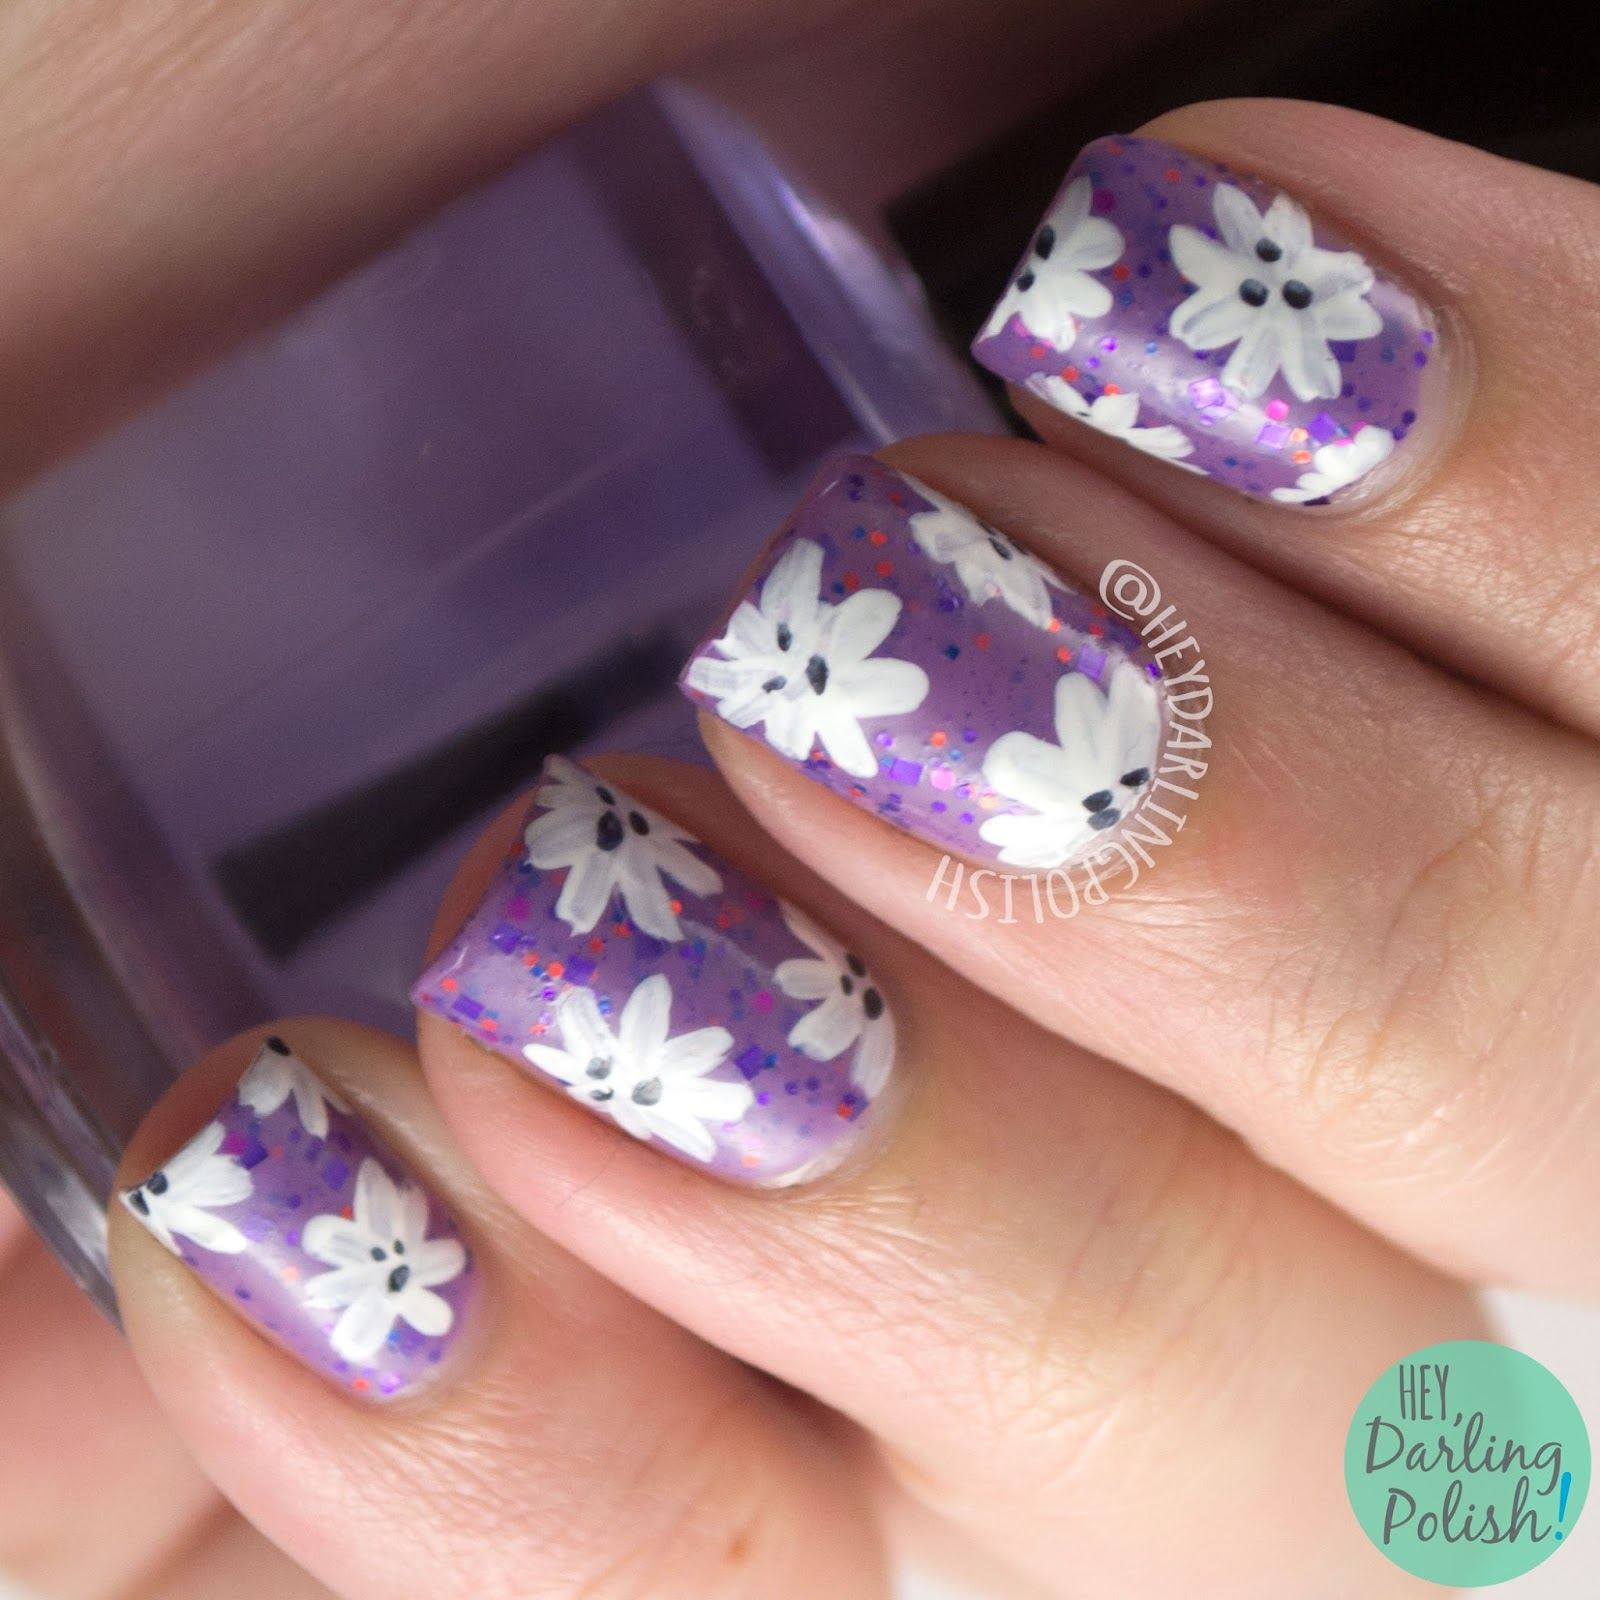 nails, nail art, nail polish, indie, indie polish, indie nail polish, hare polish, flowers, floral, hey darling polish